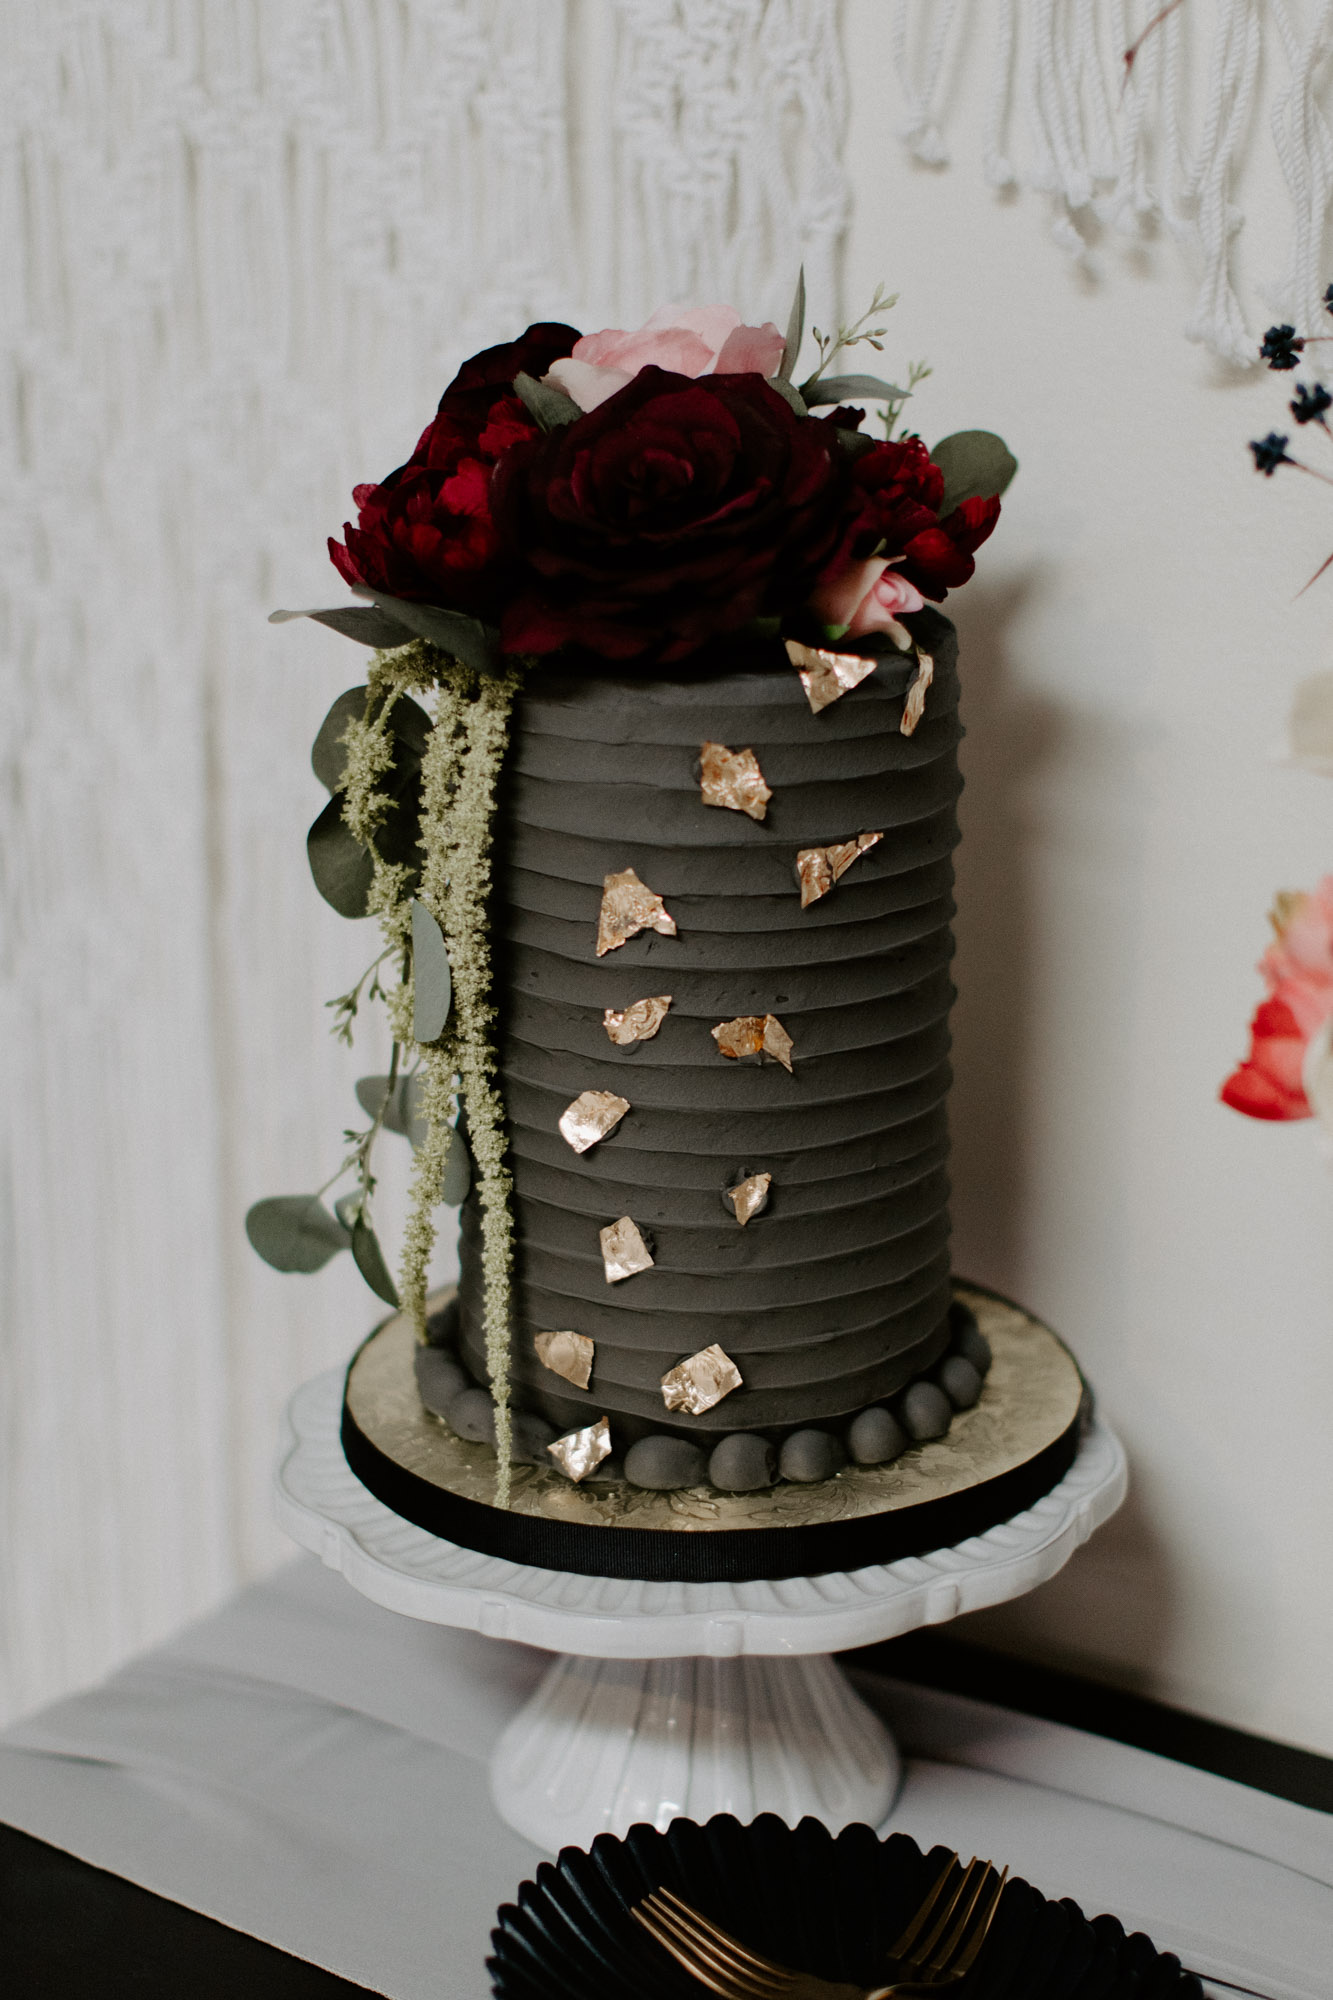 tasty looking black wedding cake at moody styled shoot